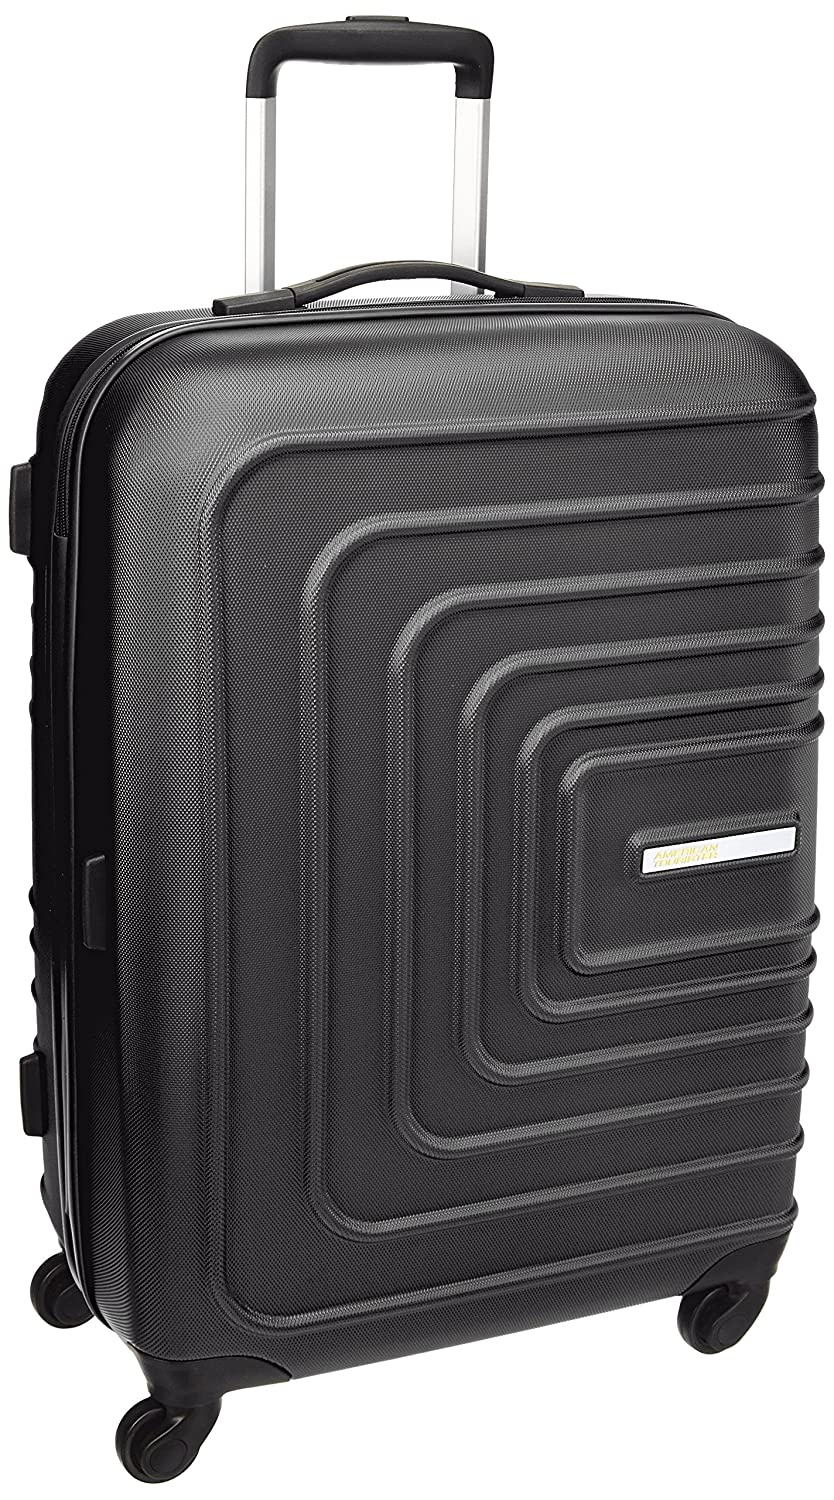 American Tourister Sunset Square ABS 67 cms Black Hard Sided Suitcase